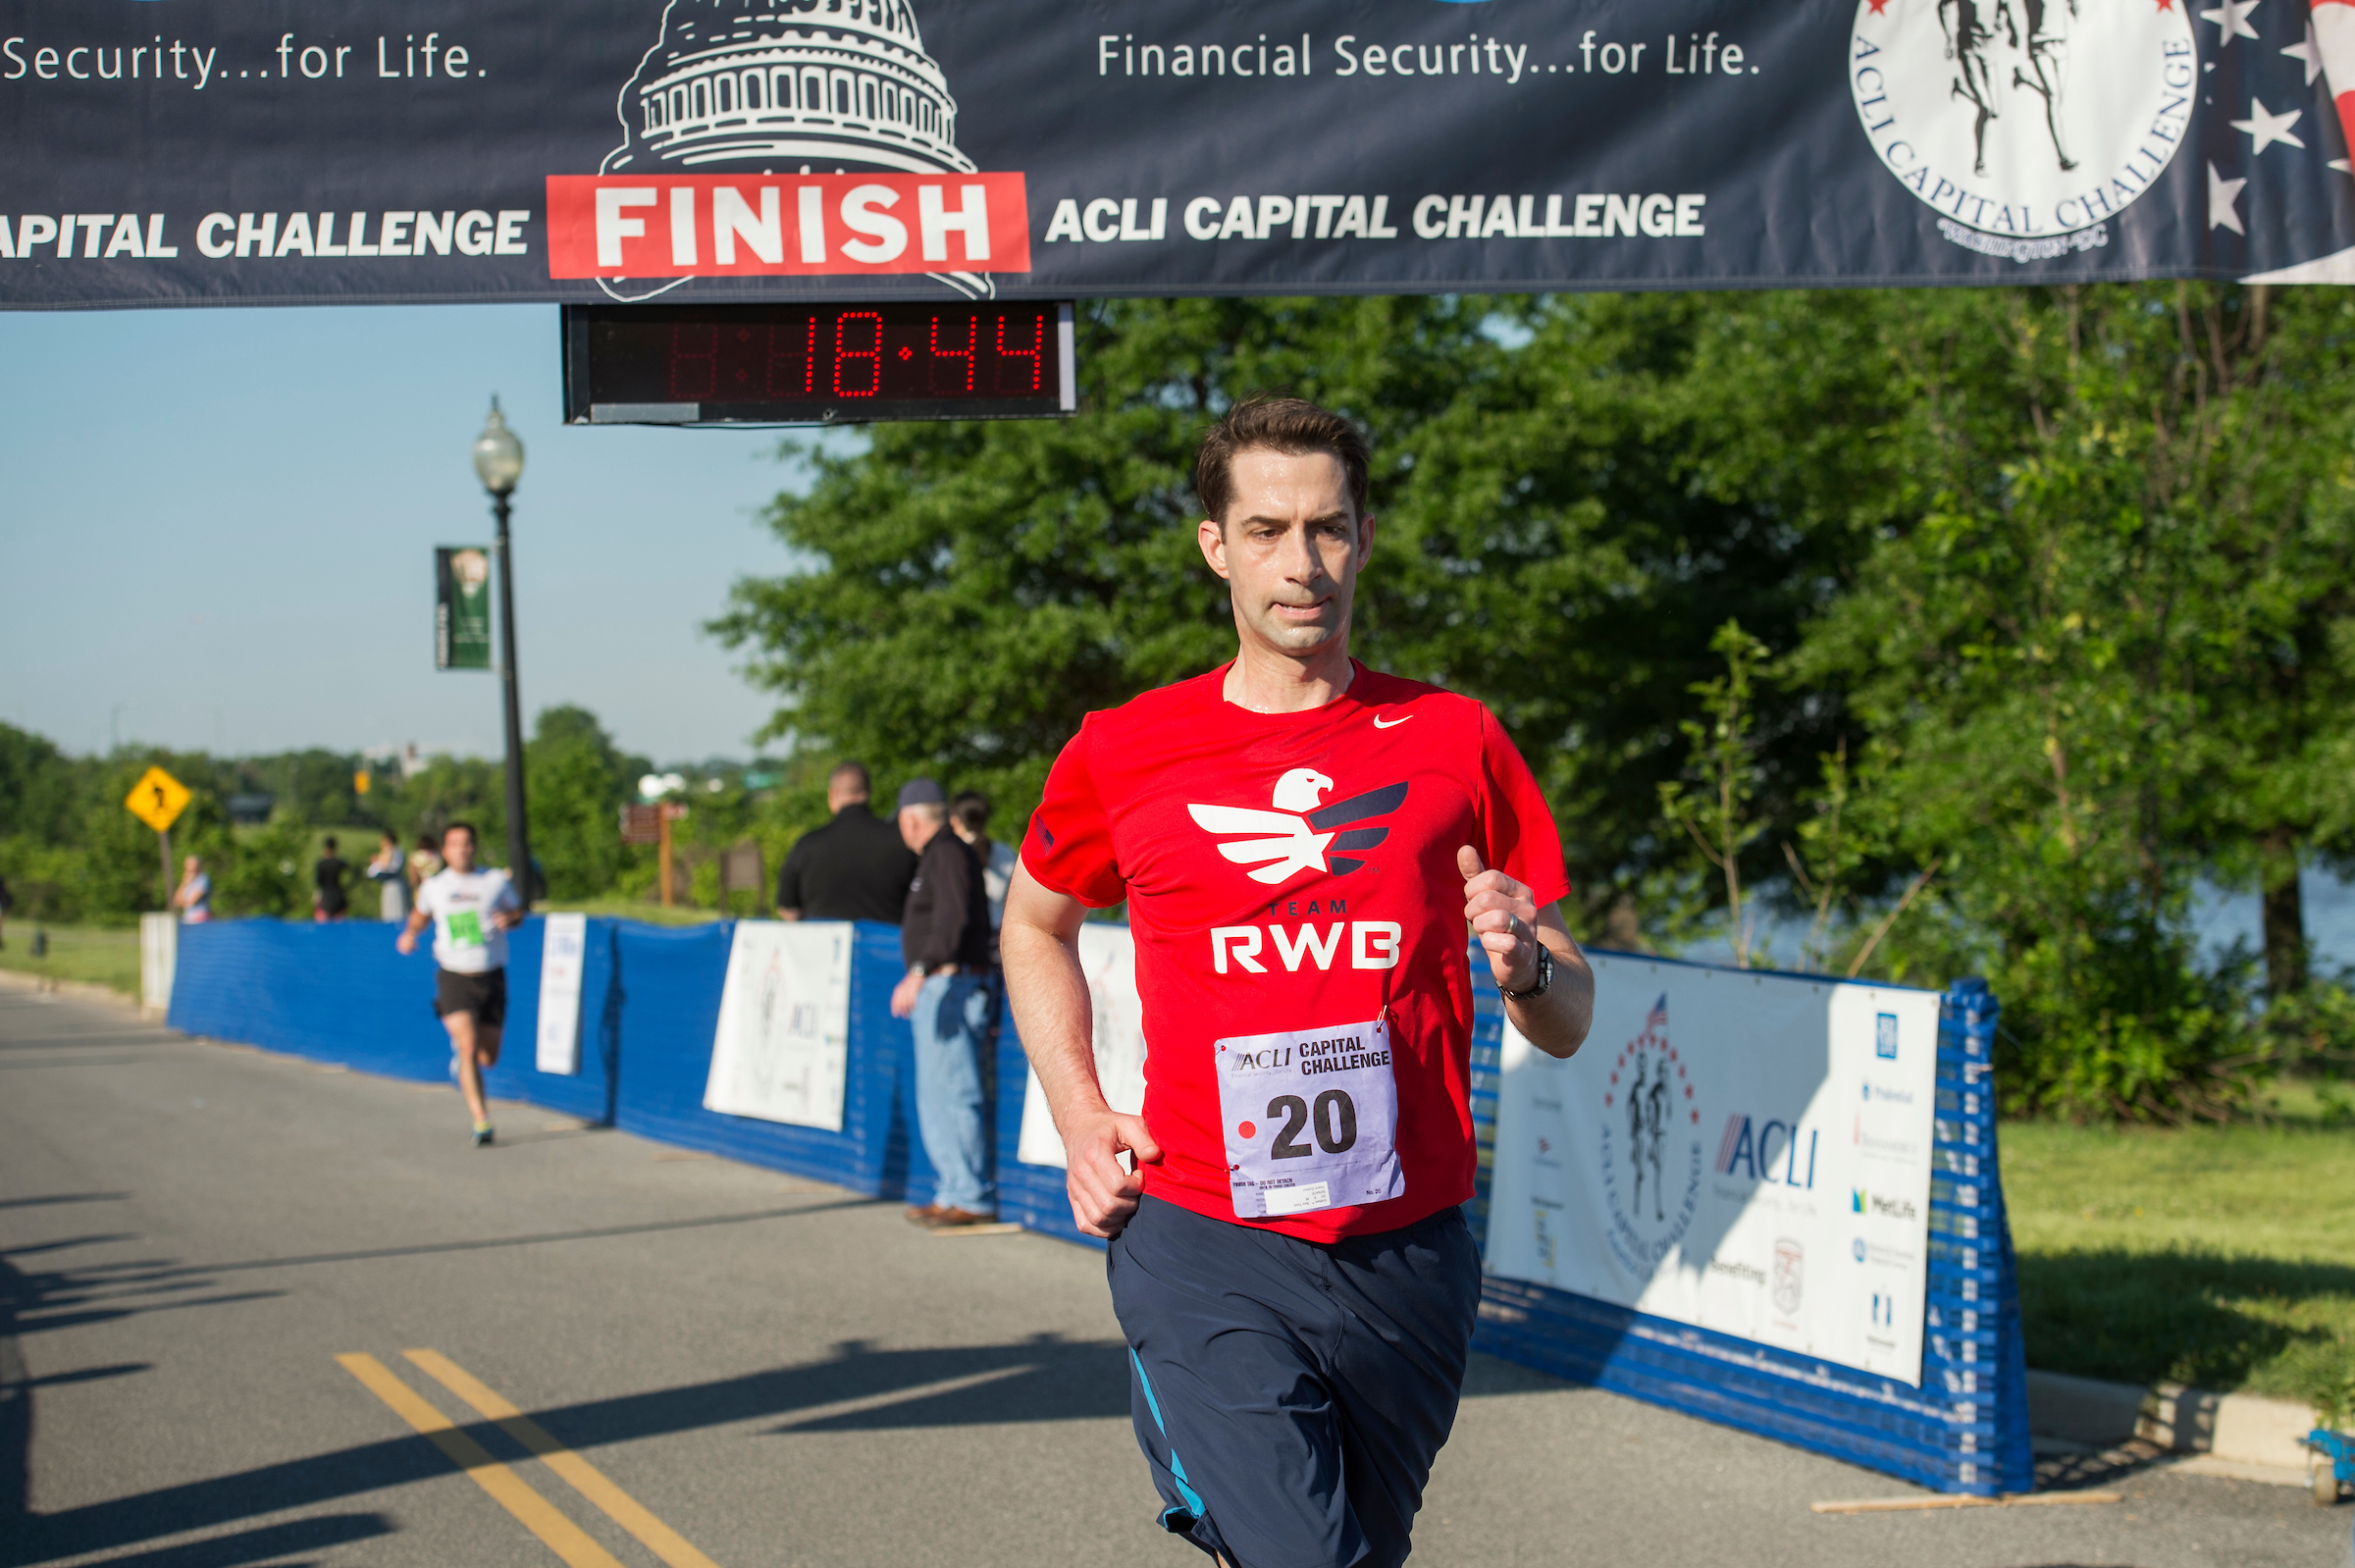 Arkansas Sen. Tom Cotton's reign as fastest lawmaker in the ACLI Capital Challenge came to an end in May this year. (He finished second.) His time in the Senate could also be coming to an end if a New York Times report comes to fruition about a White House plan that would have Secretary of State Rex Tillerson ousted, CIA Director Mike Pompeo moved to State and Cotton offered the CIA directorship. Twist: Cotton is pro-waterboarding — look for a McCain thumbs-down on his confirmation. (Tom Williams/CQ Roll Call file photo).